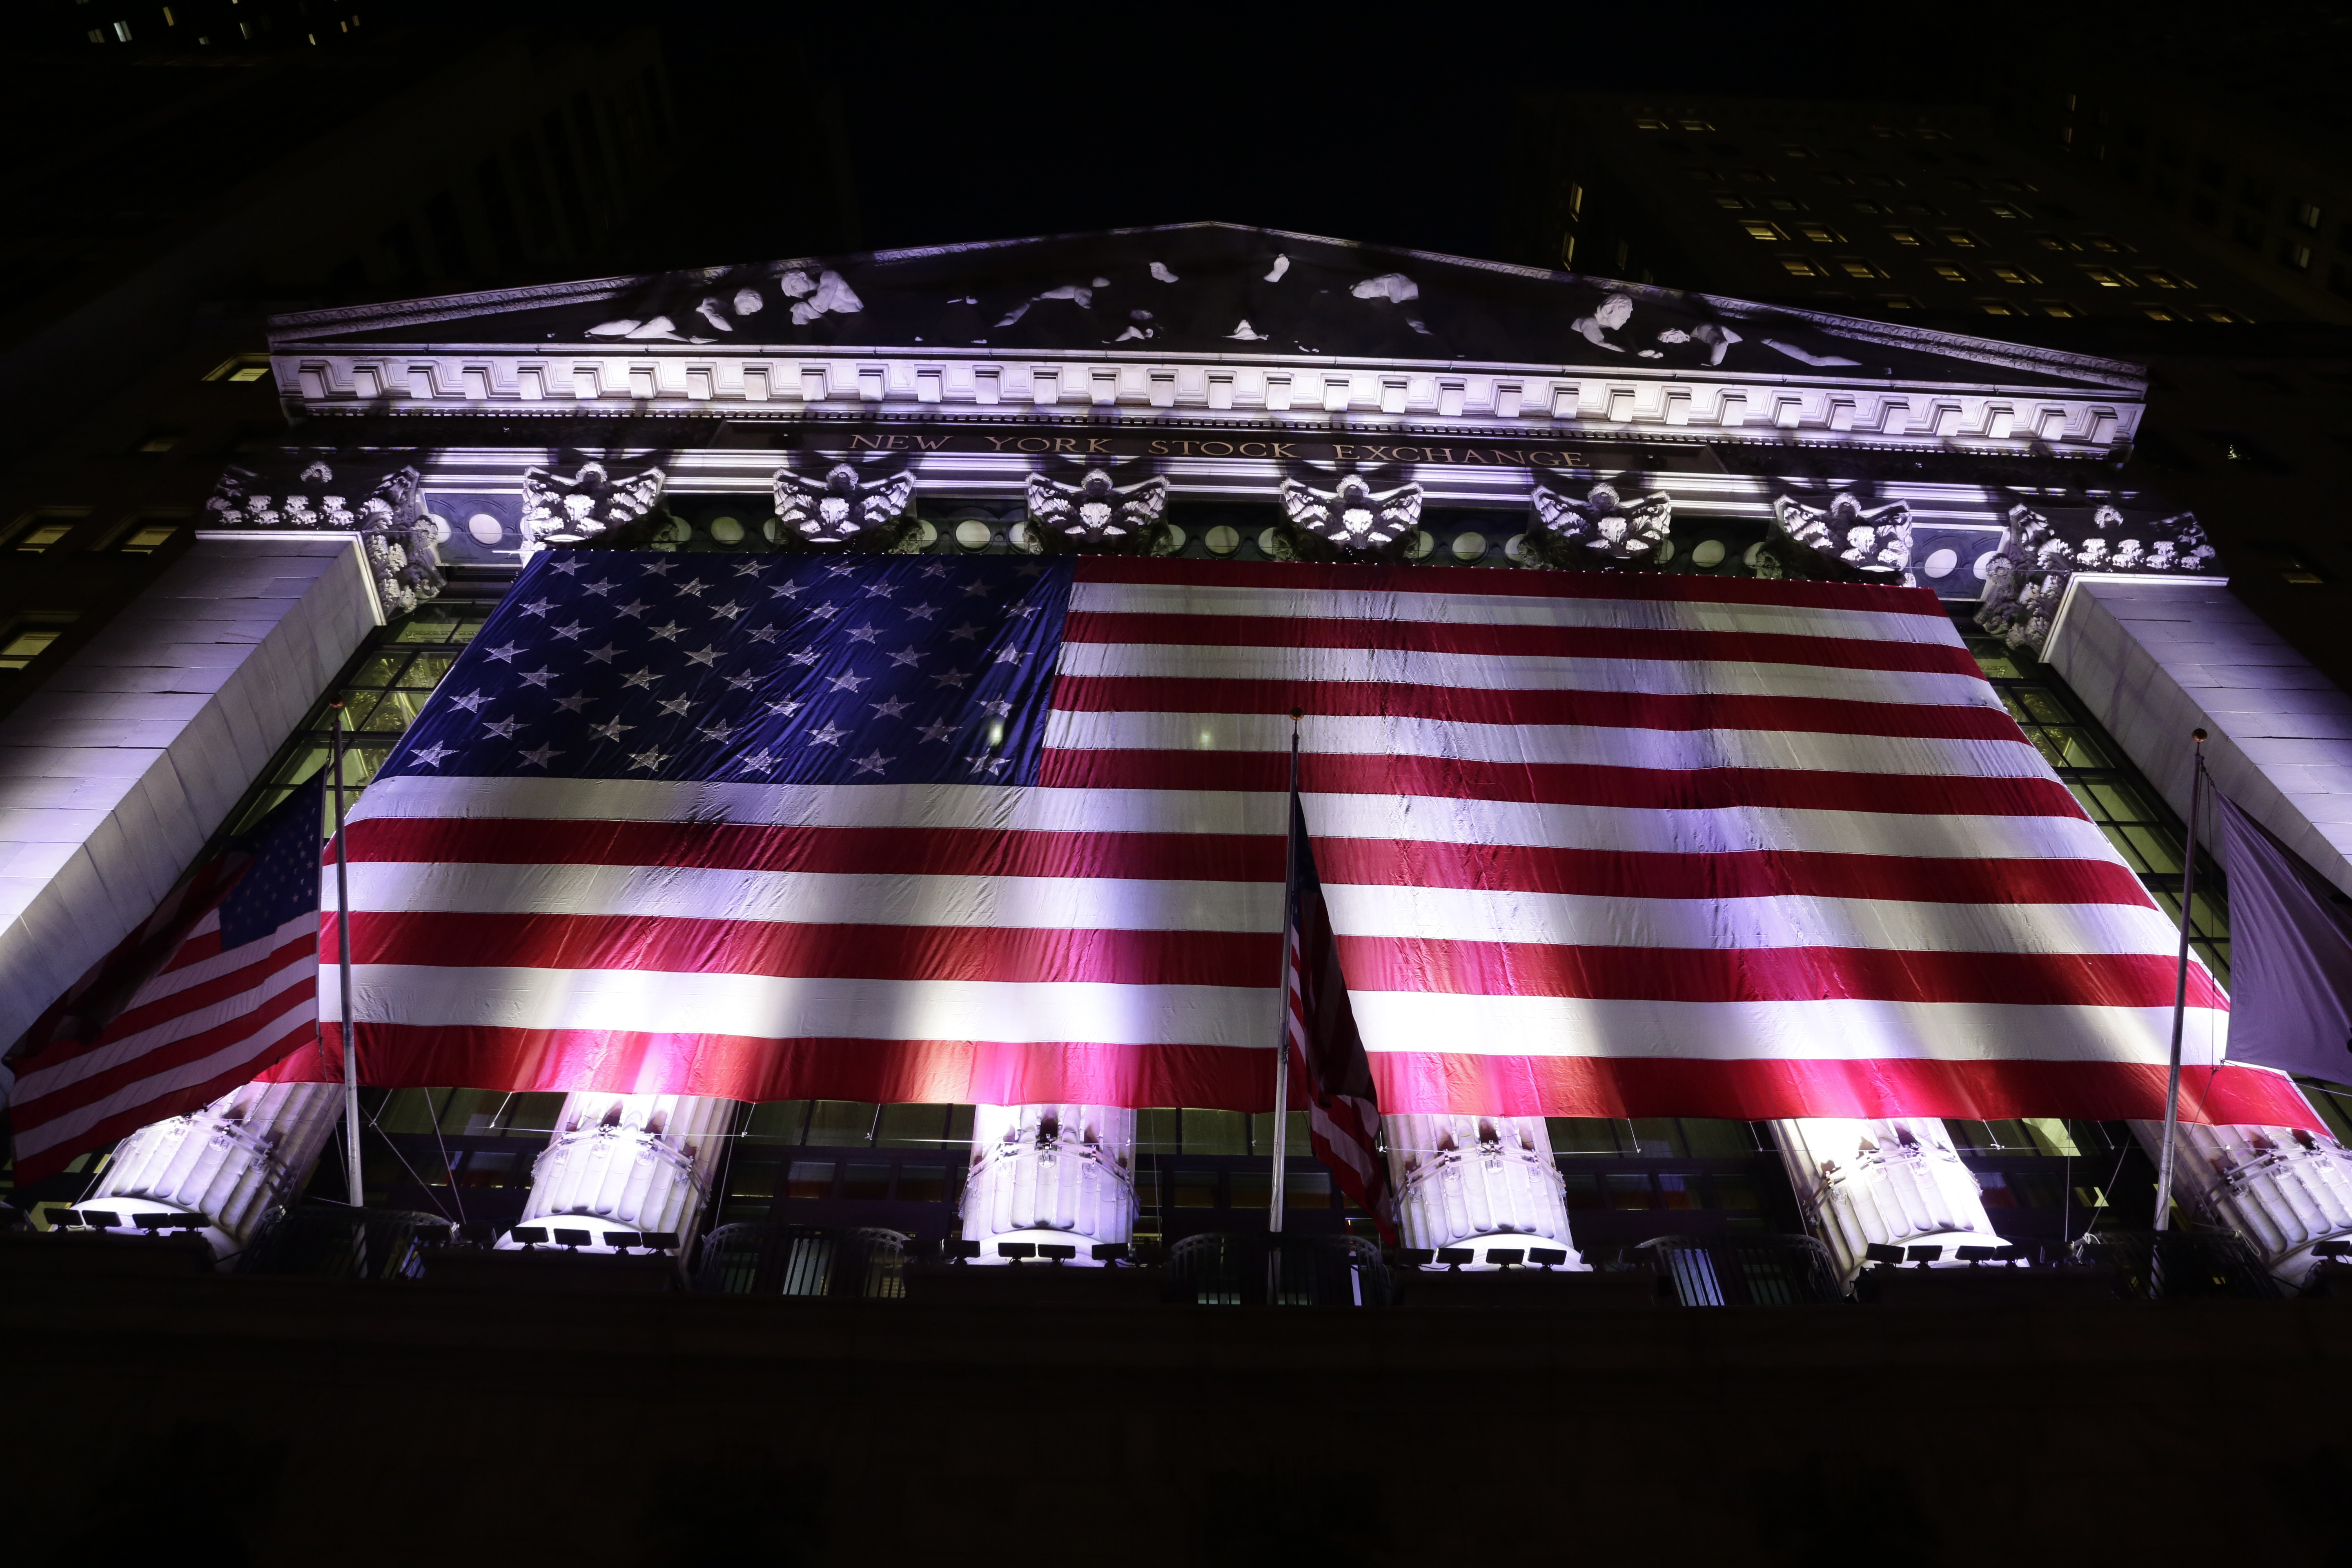 Financial Markets Wall Street In this evening Friday, Feb. 17, 2017, photo, an American flag hangs on the front of the New York Stock Exchange. European stocks declined while most Asian markets rose Friday, April 21, 2017, ahead of the first round of voting in France's closely watched presidential election. (AP Photo/Peter Morgan)